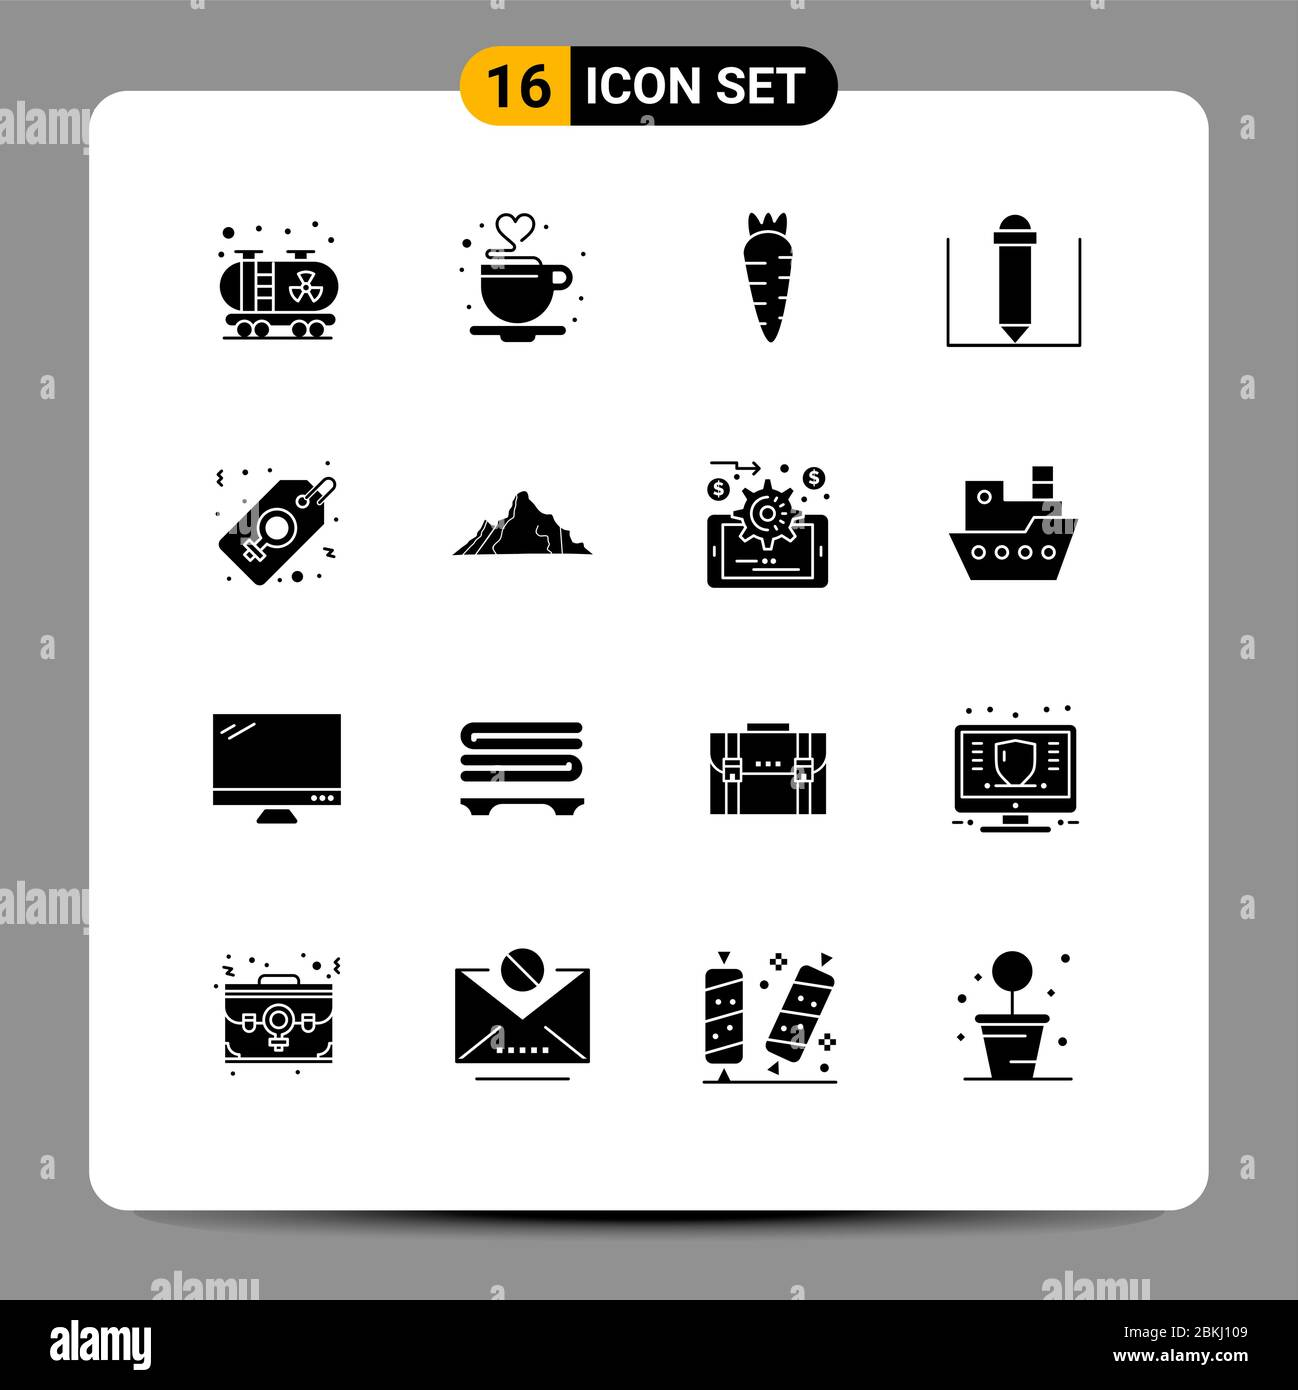 universal icon symbols group of 16 modern solid glyphs of landscape women sign food tag label editable vector design elements stock vector image art alamy alamy